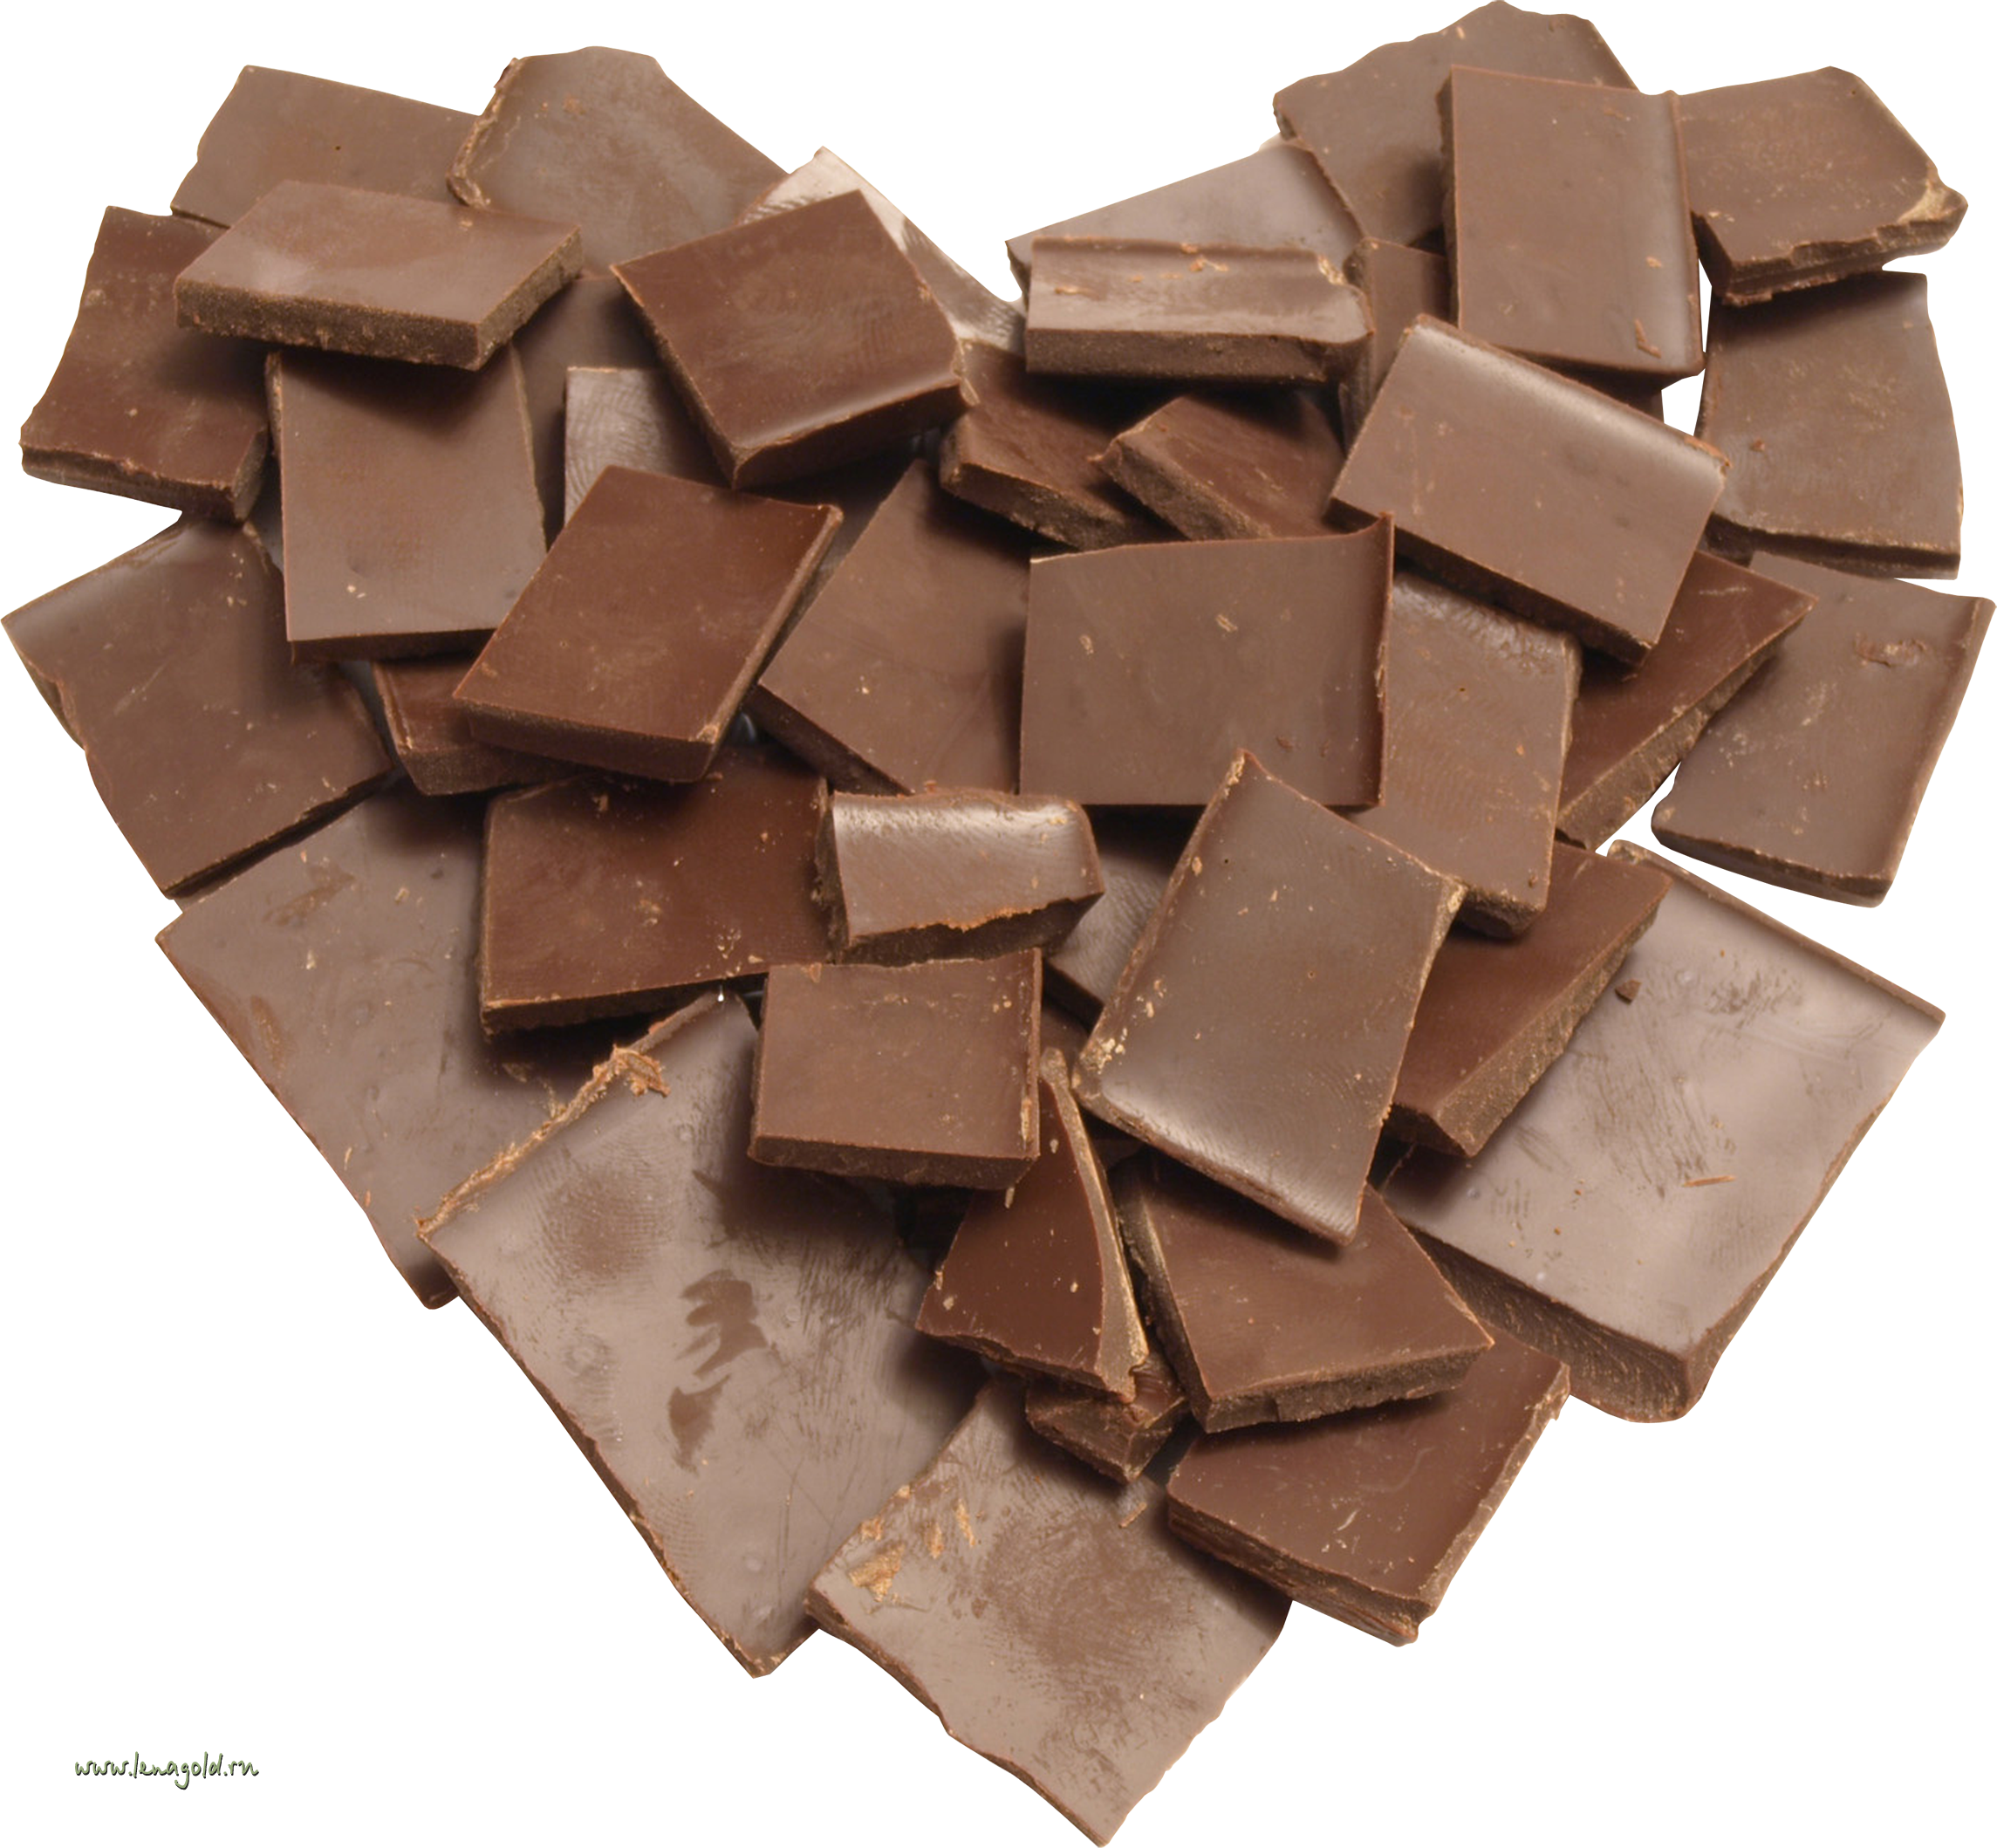 Png chocolate. Image purepng free transparent